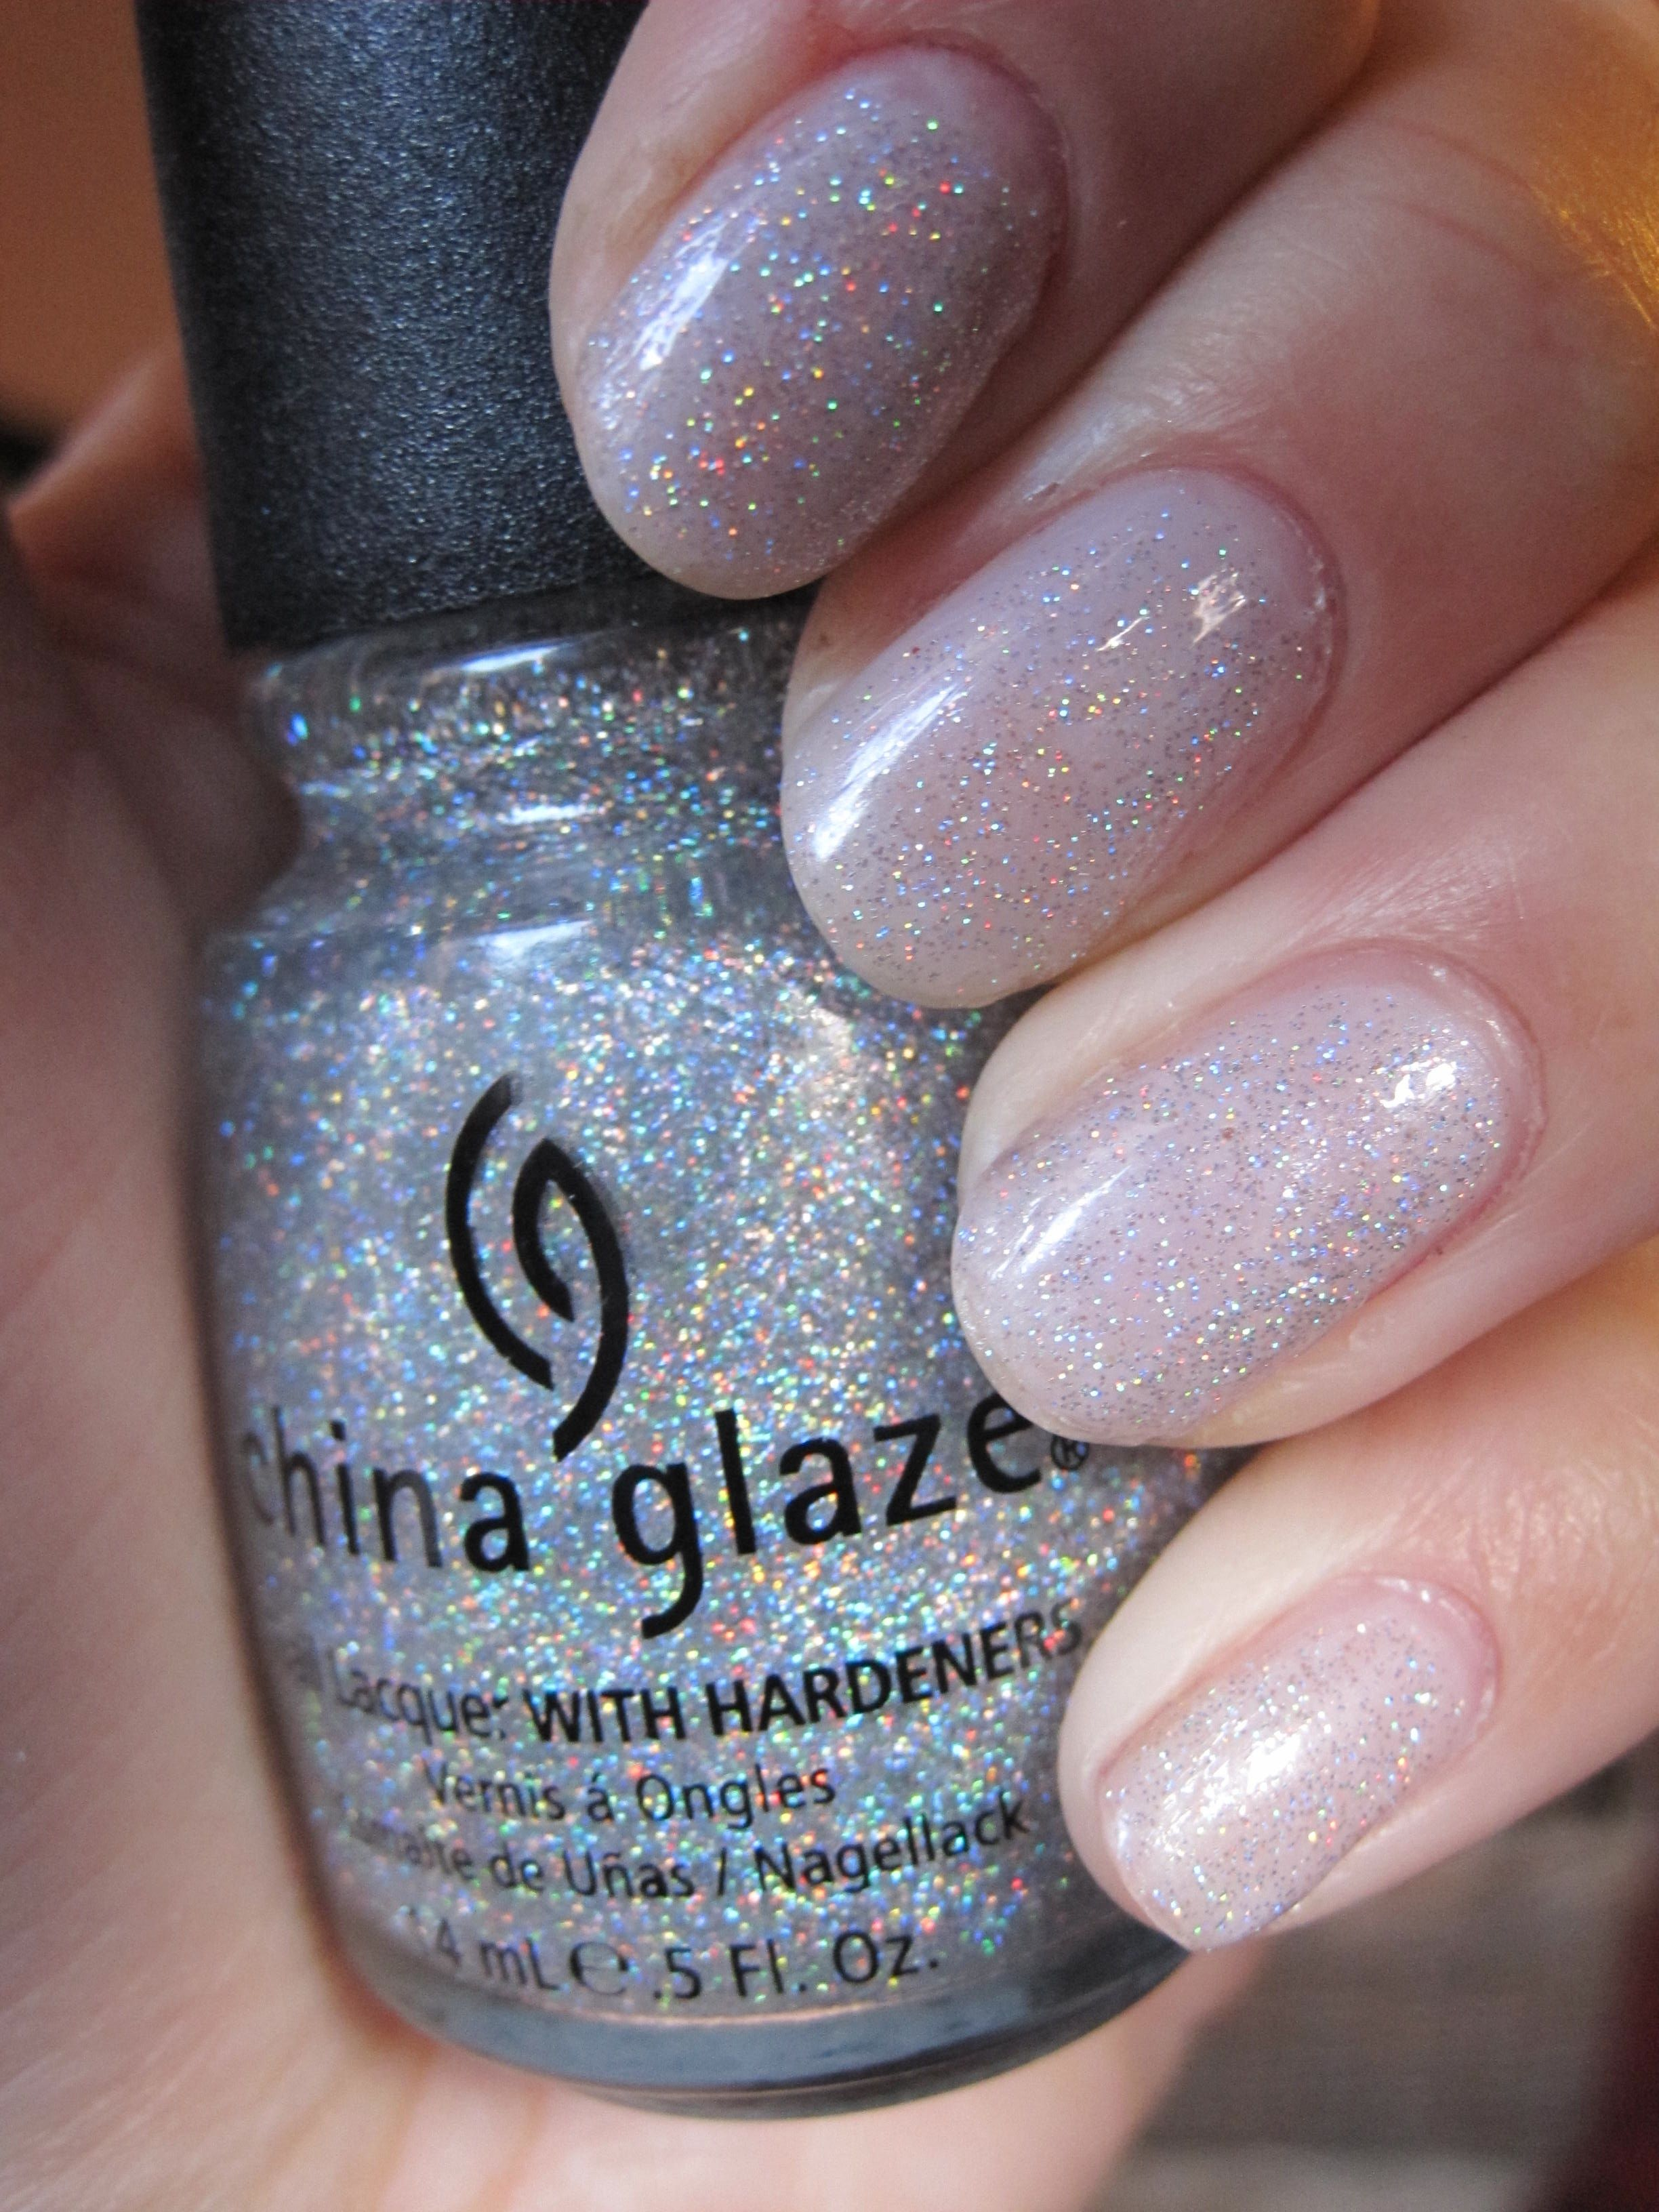 Best China Glaze Glitter Nail Polishes And Swatches – Our Top 10